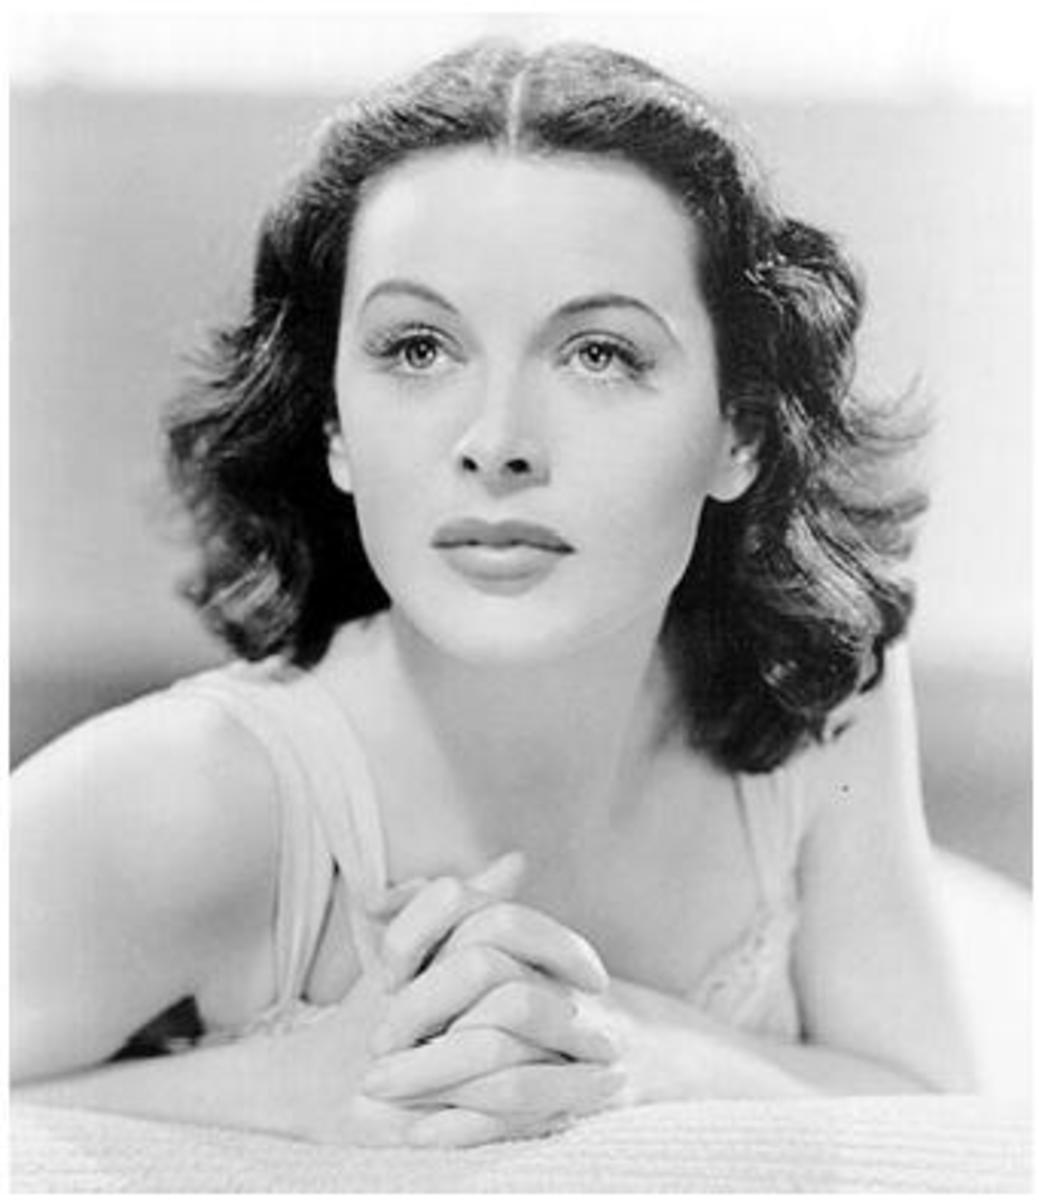 Did Hedy Lamarr really invent frequency-hopping, or spread spectrum switching?